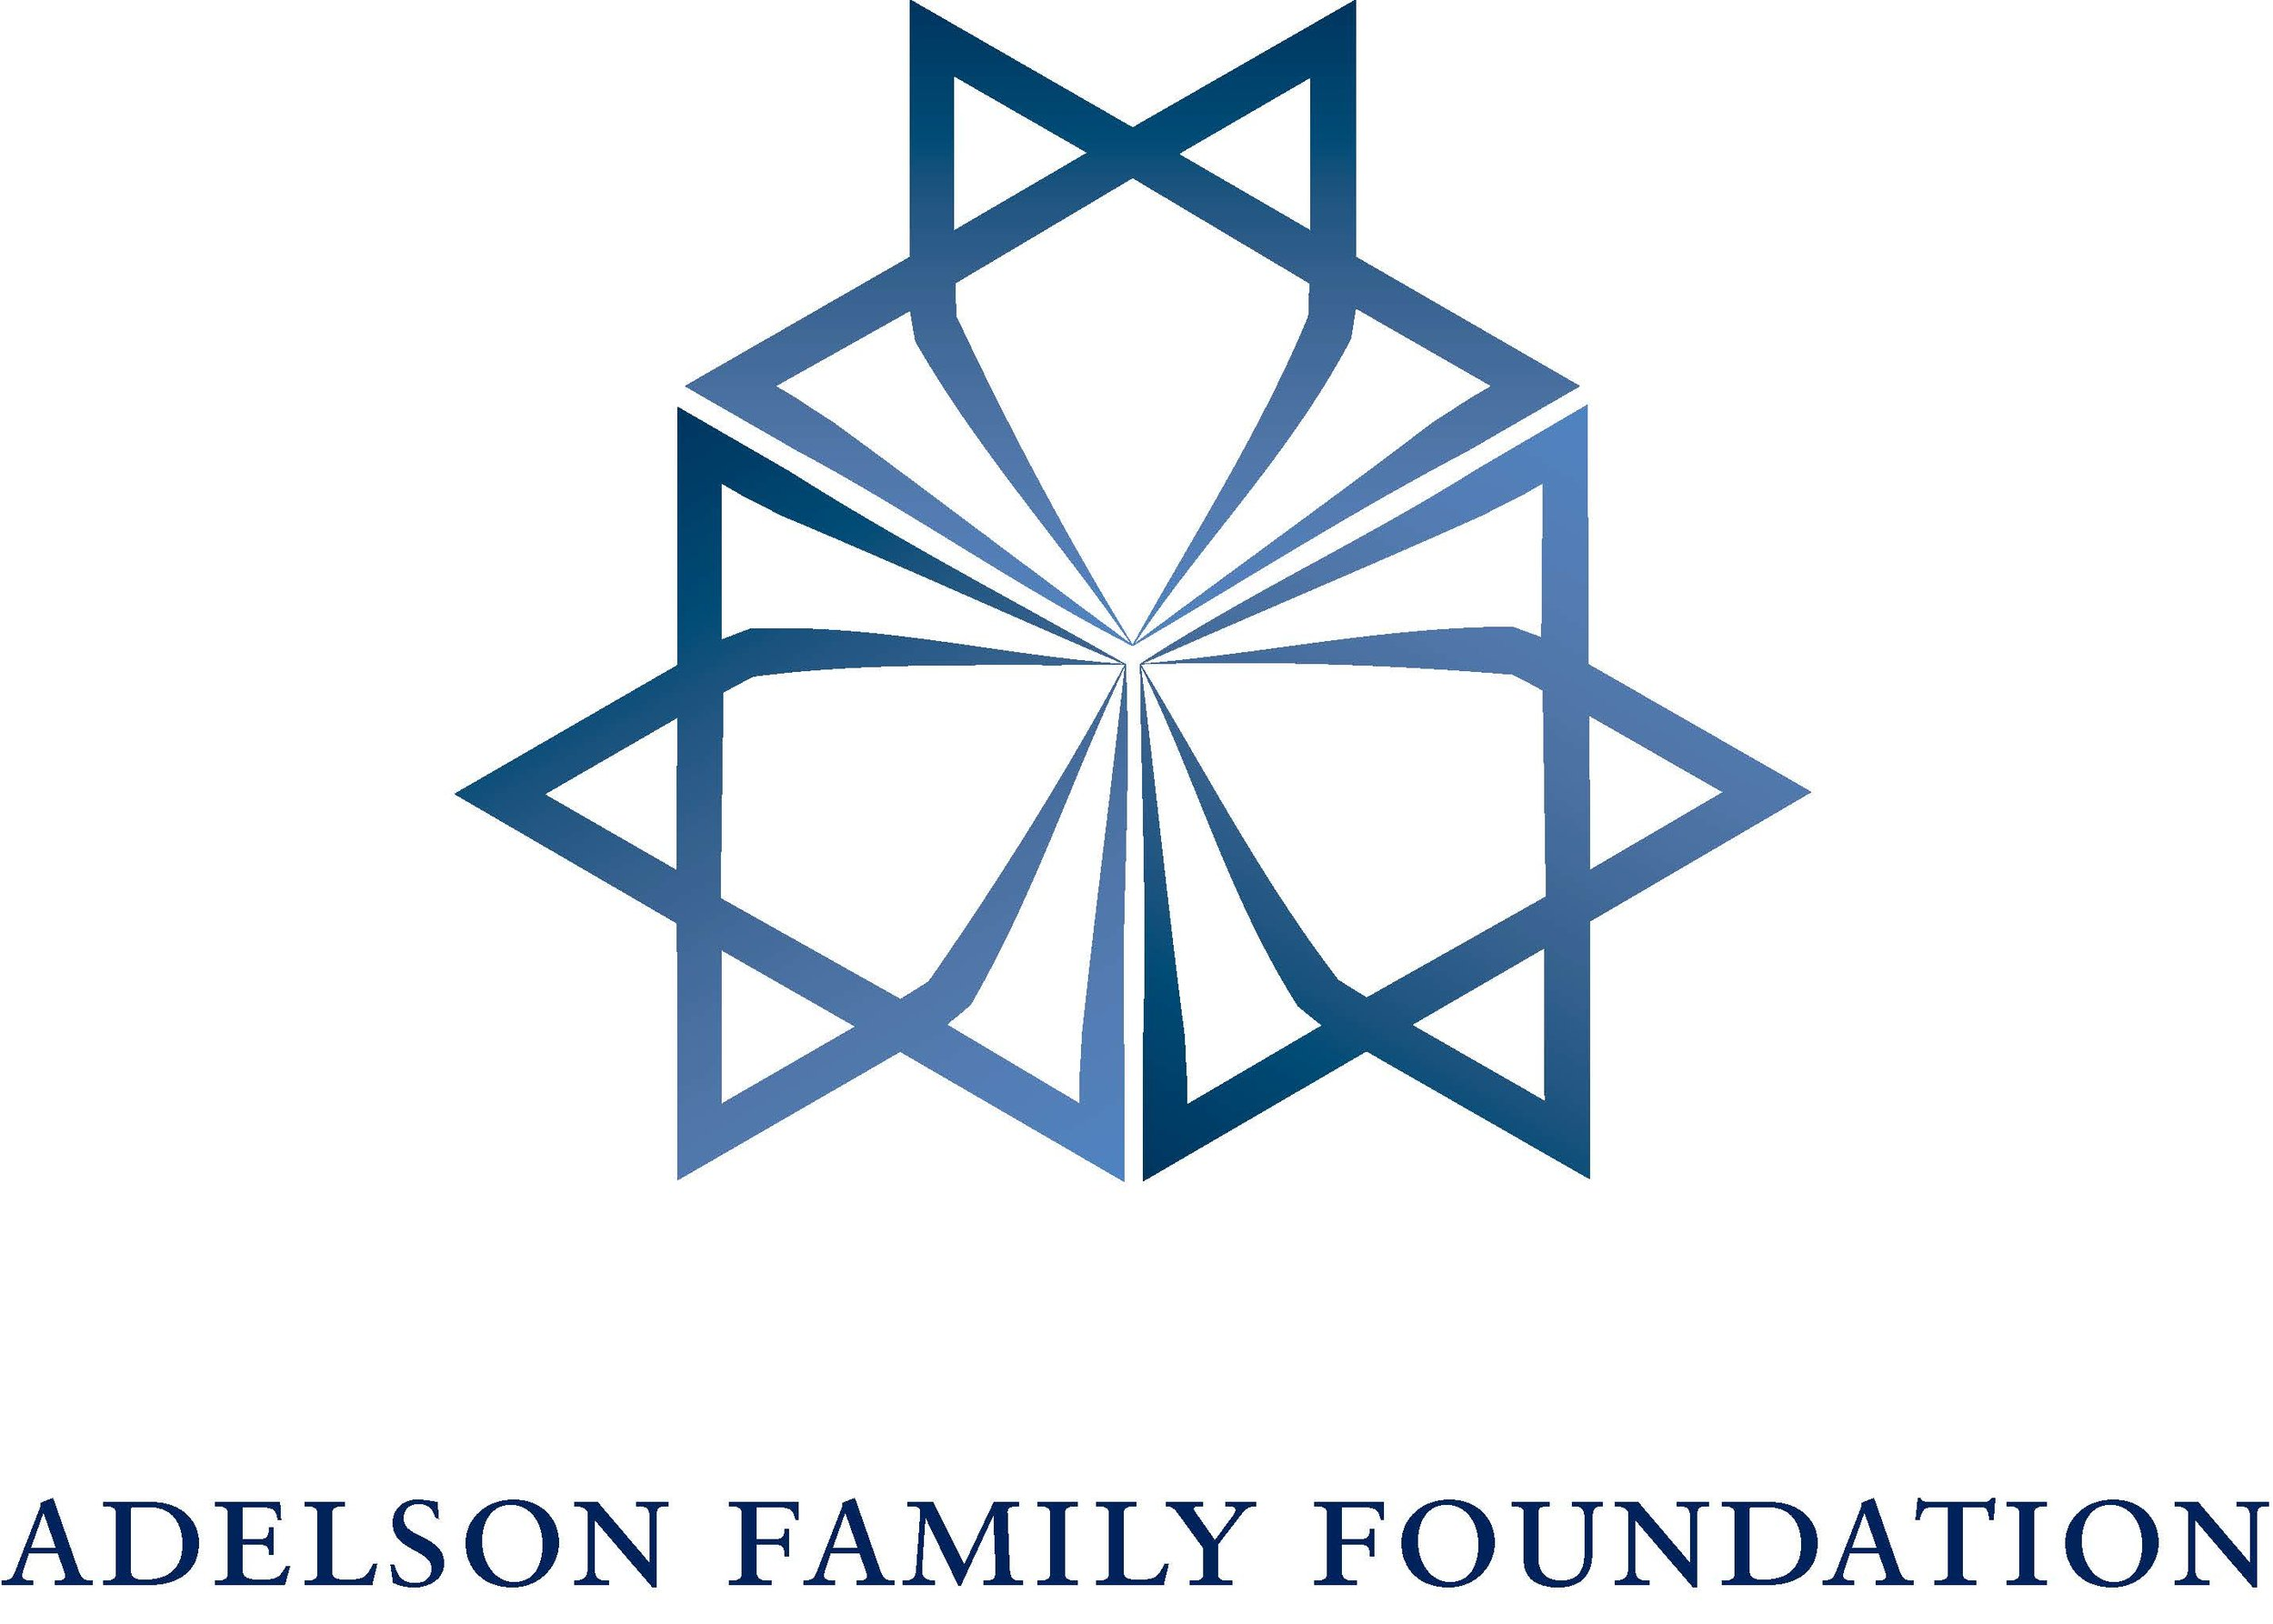 Adelson Family Foundation.jpg